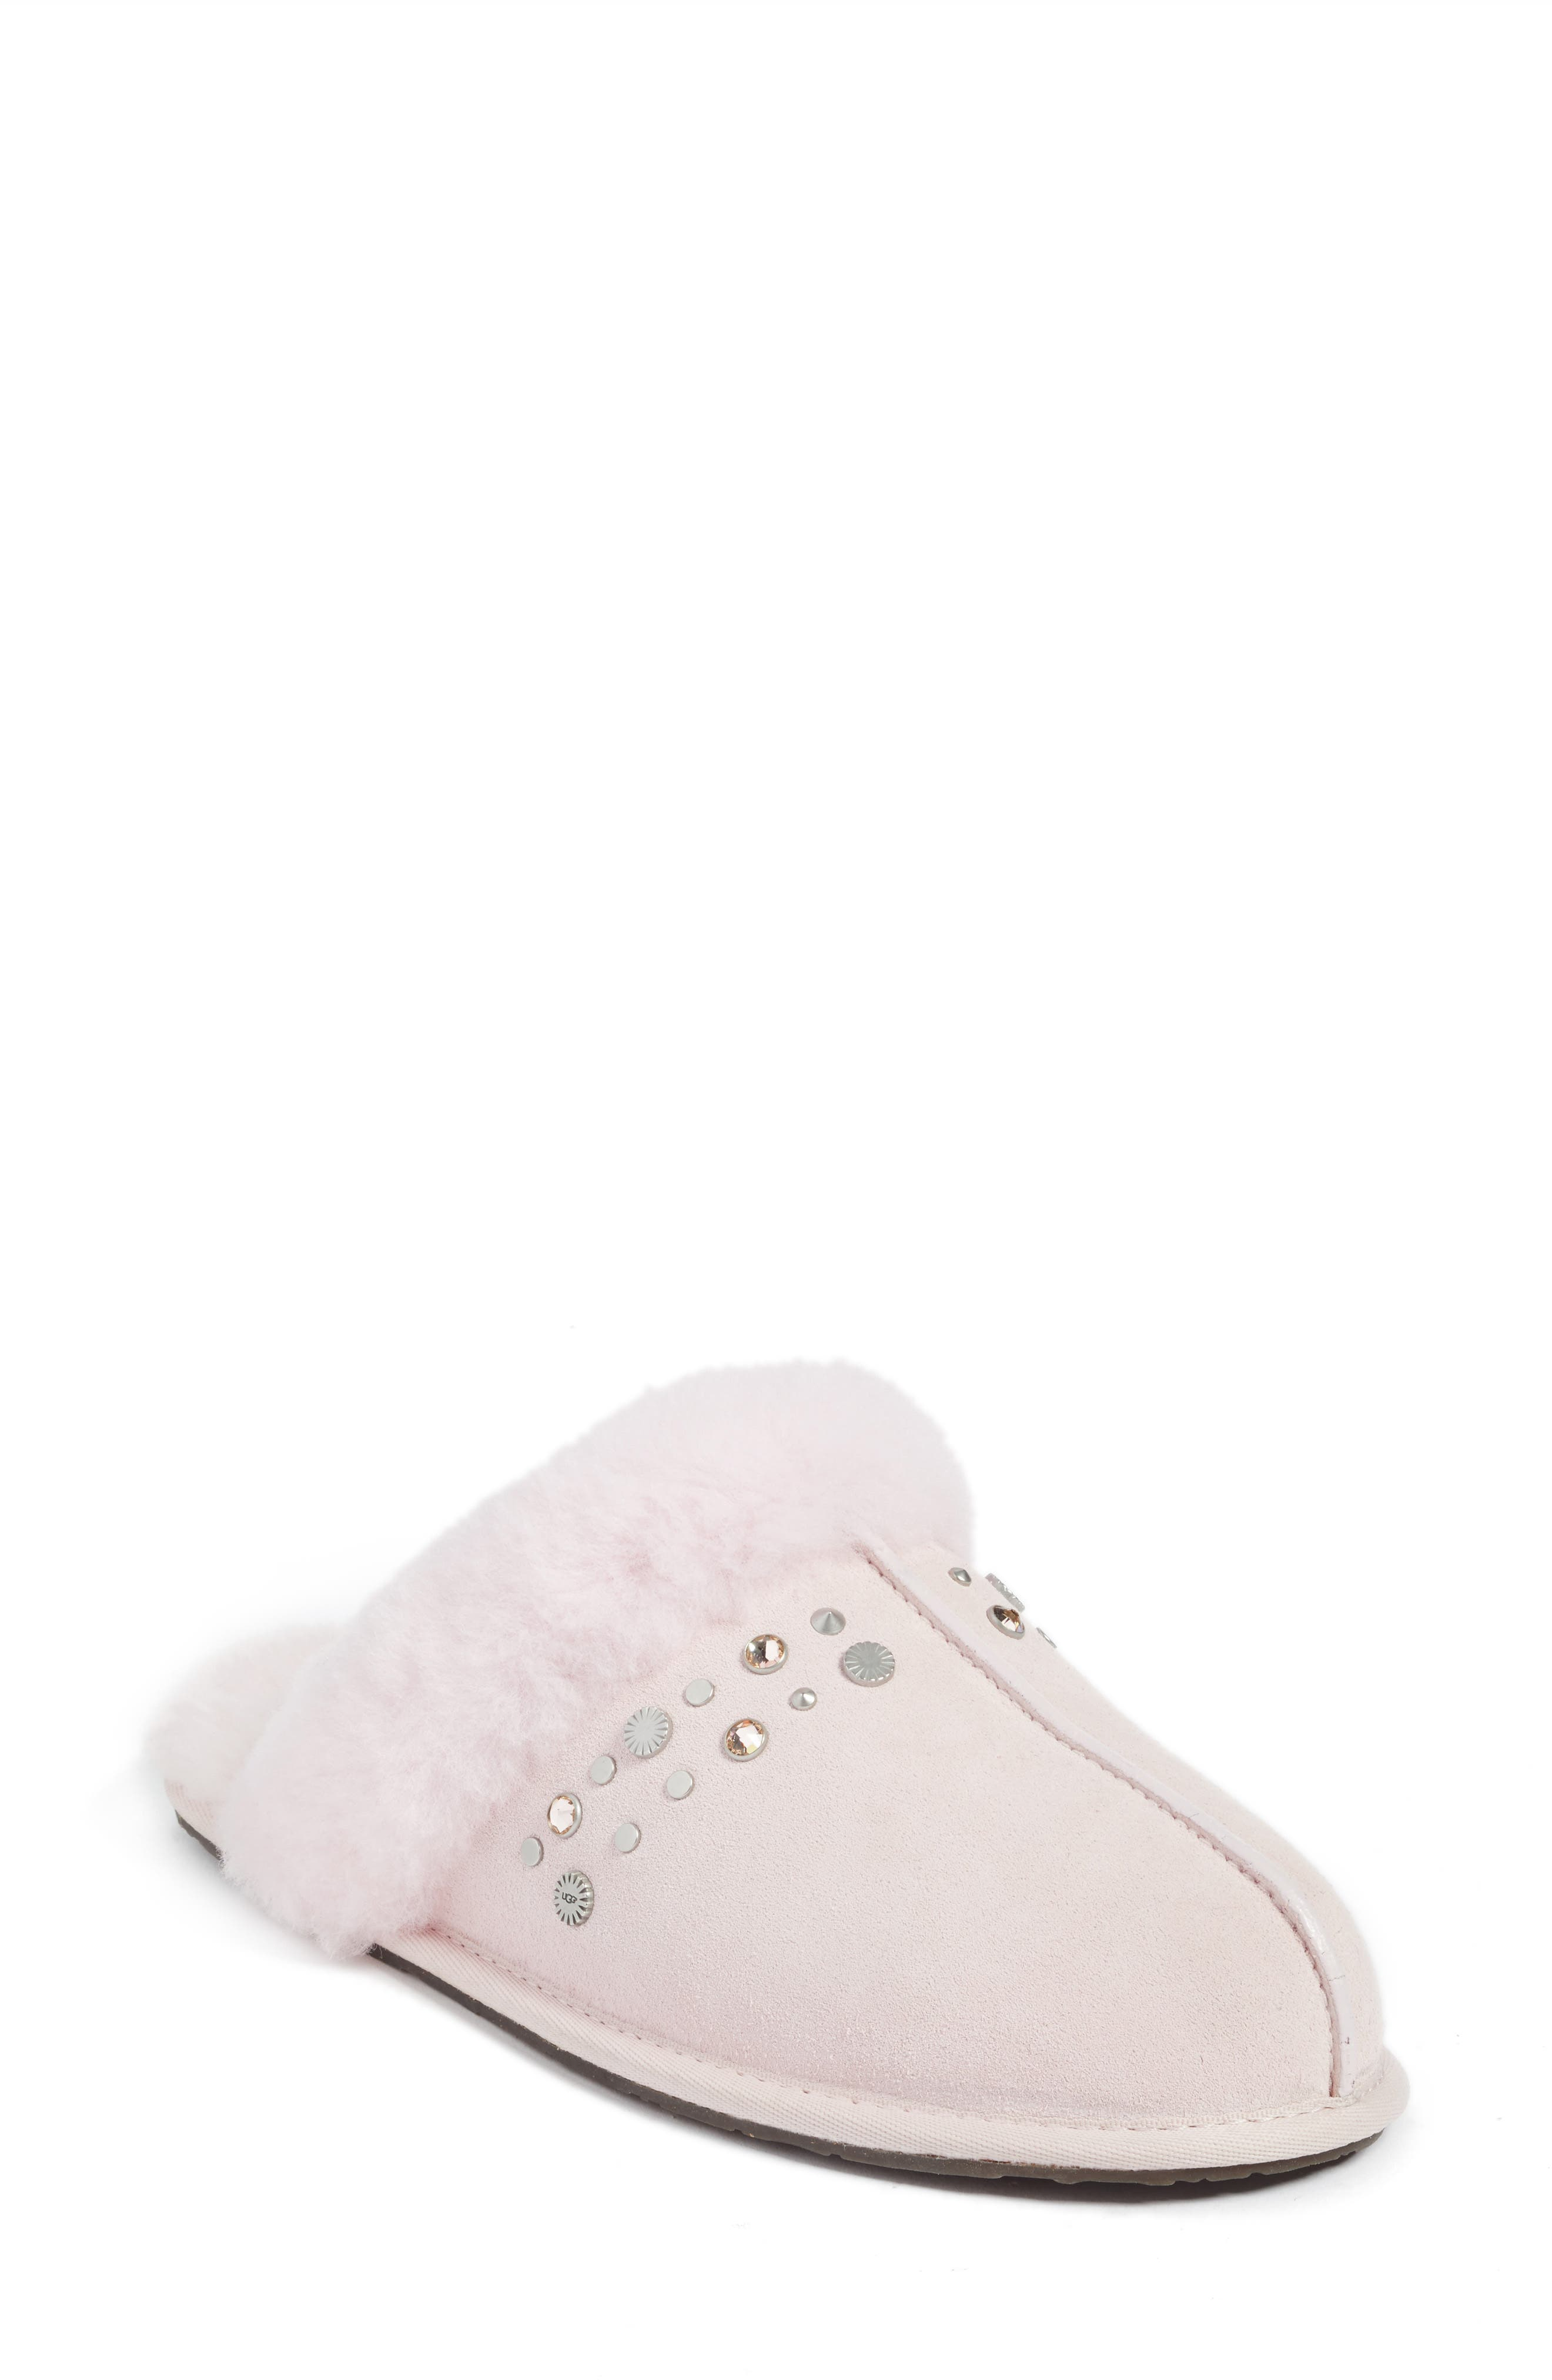 Scuffette II Studded Slipper,                         Main,                         color, Seashell Pink